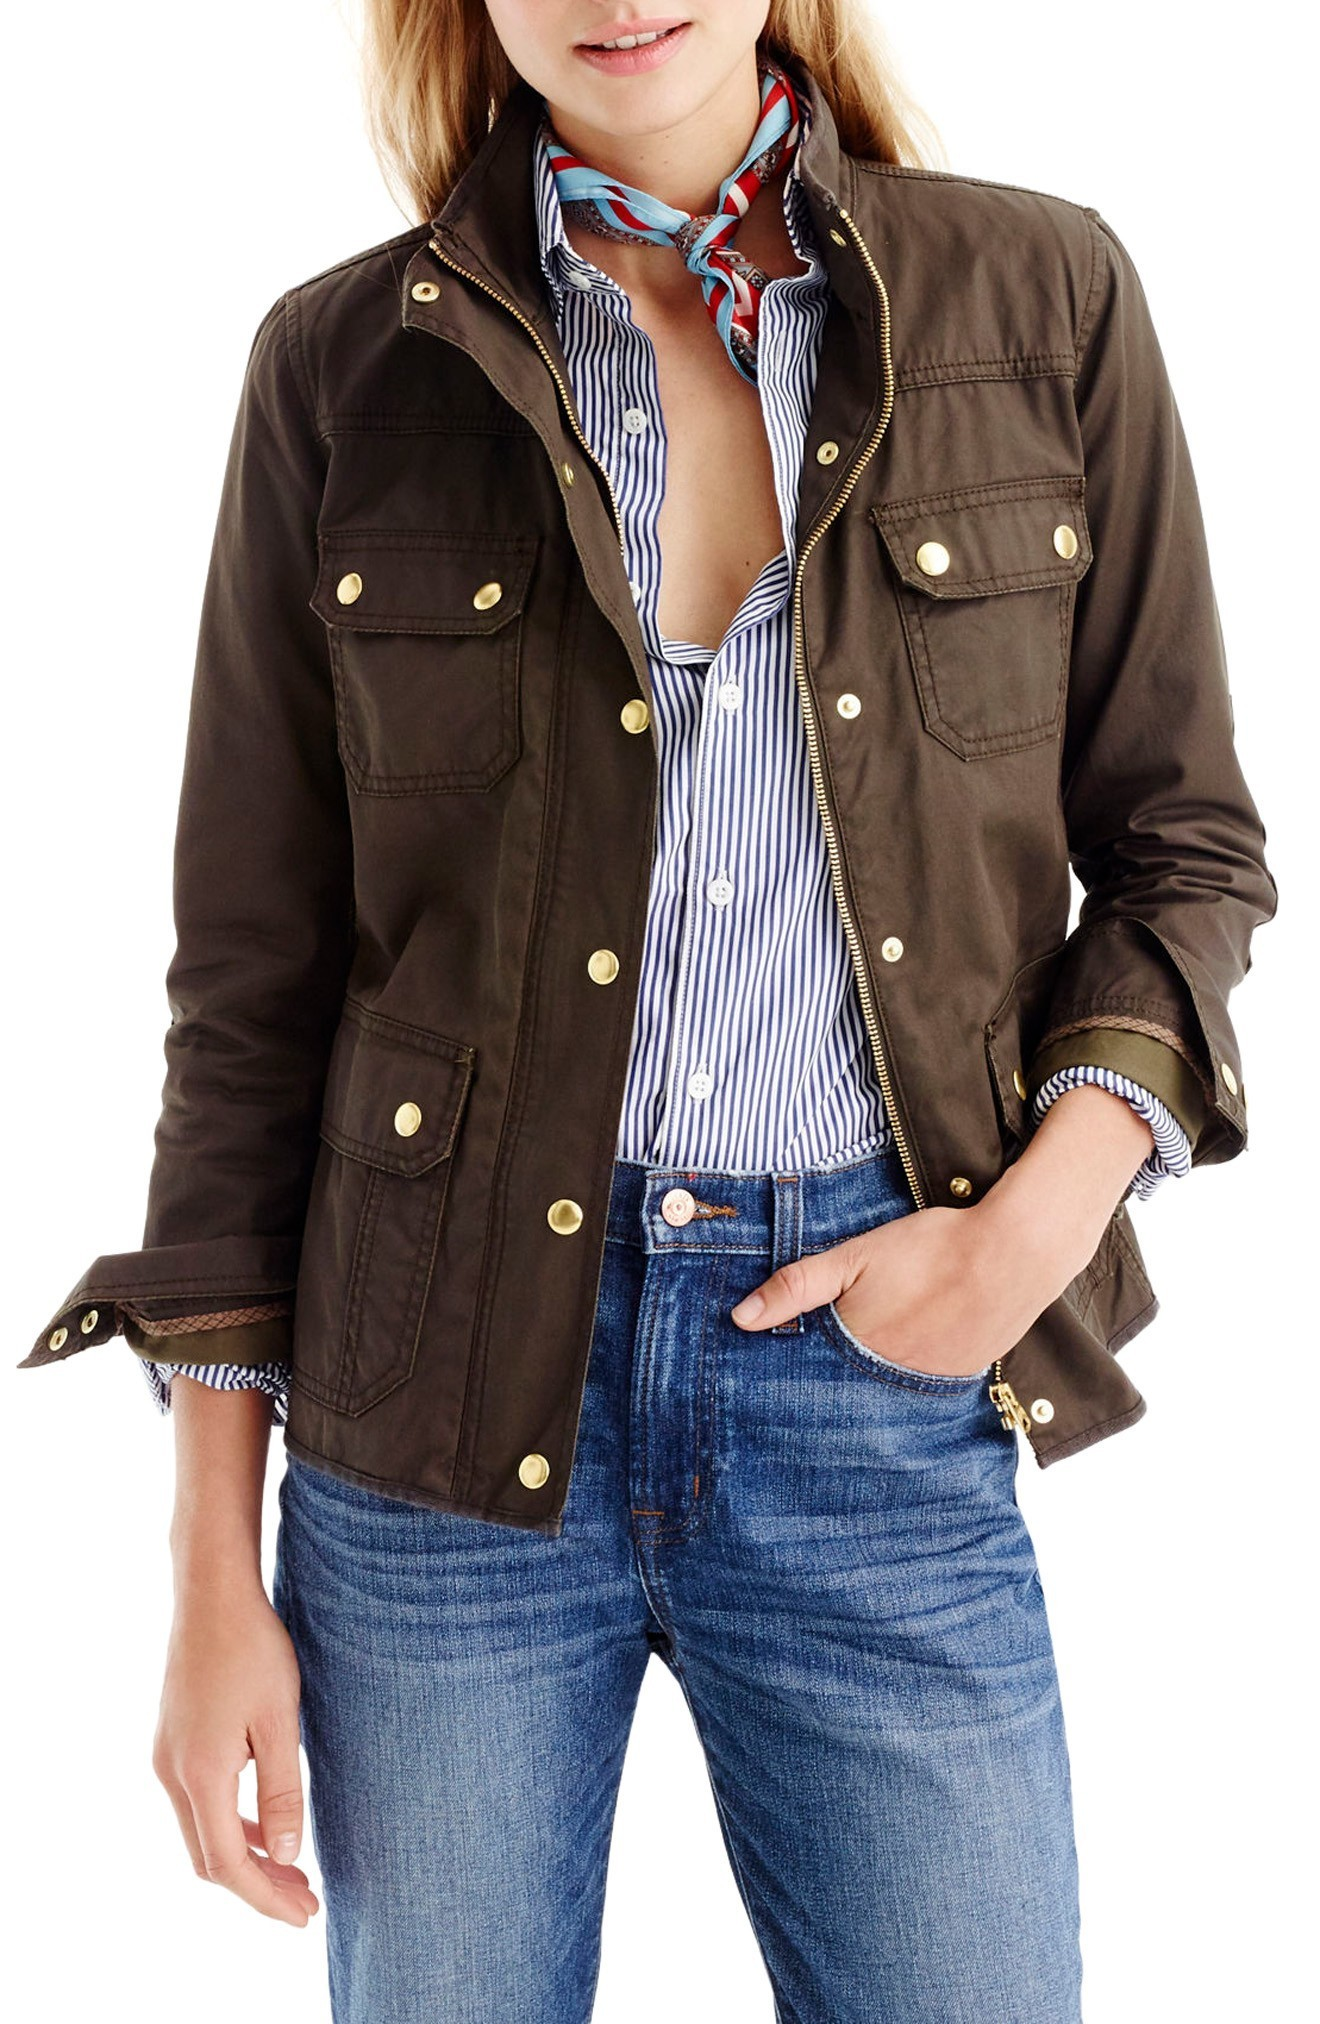 【送料込】J.Crew Downtown Field Jacket ジャケット